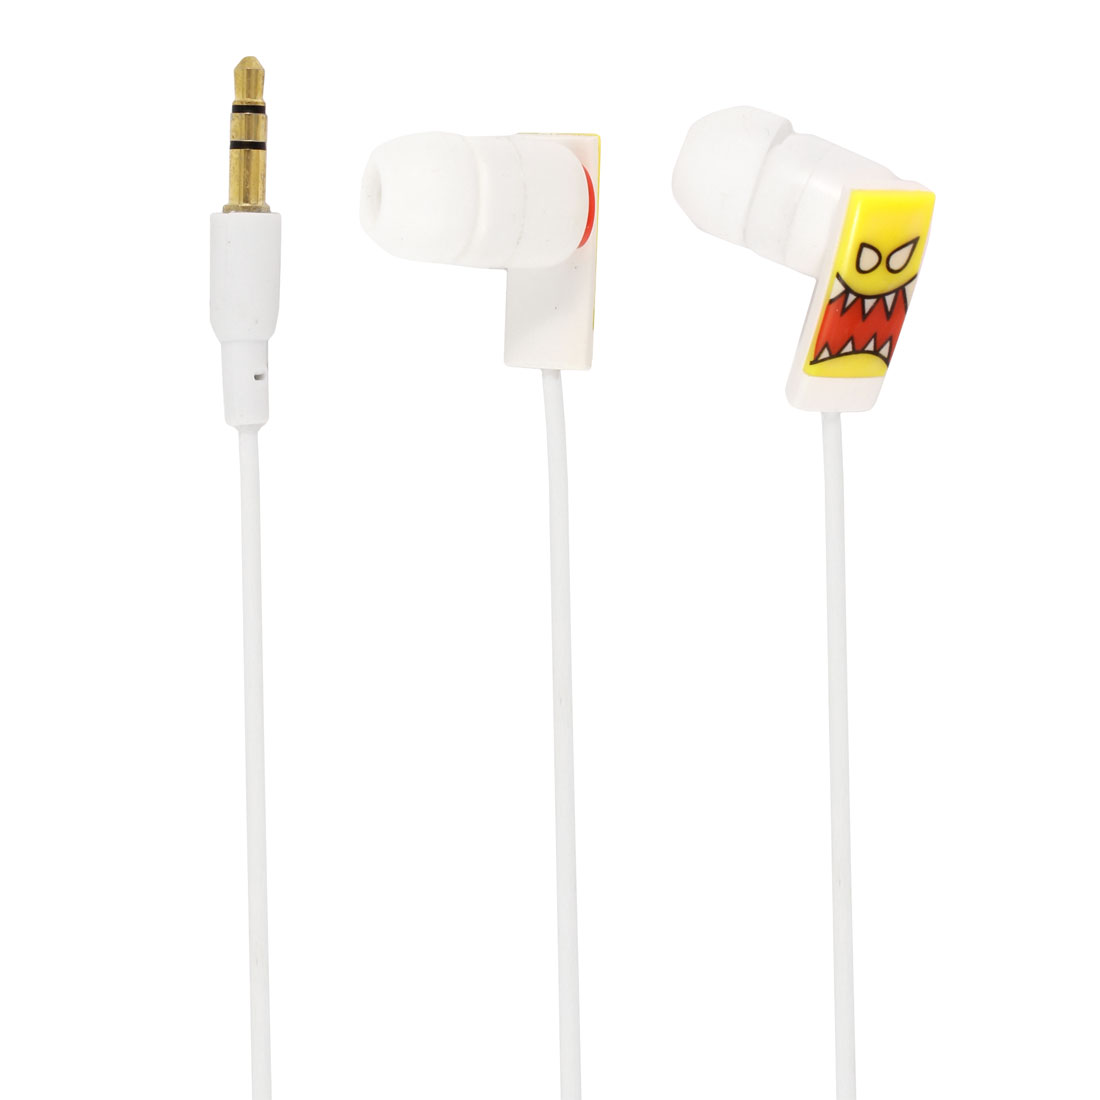 3.5mm Plug In-ear Headphone Earphone 119cm 3.9ft Cable White for Laptop Mp4